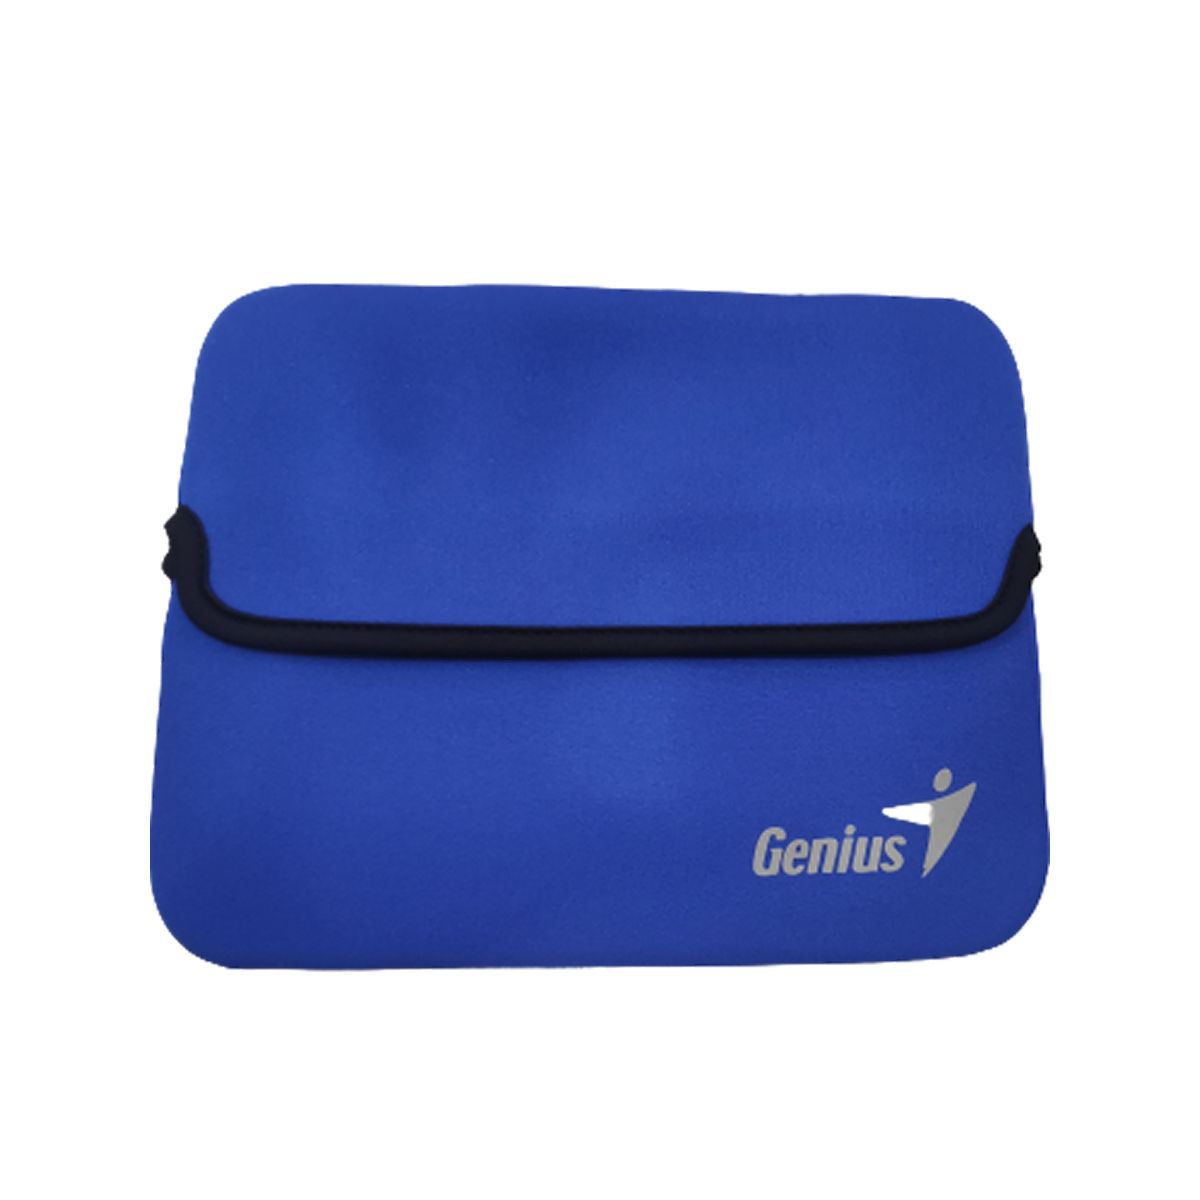 "Genius Funda 10"" Azul Tablet Netbook"